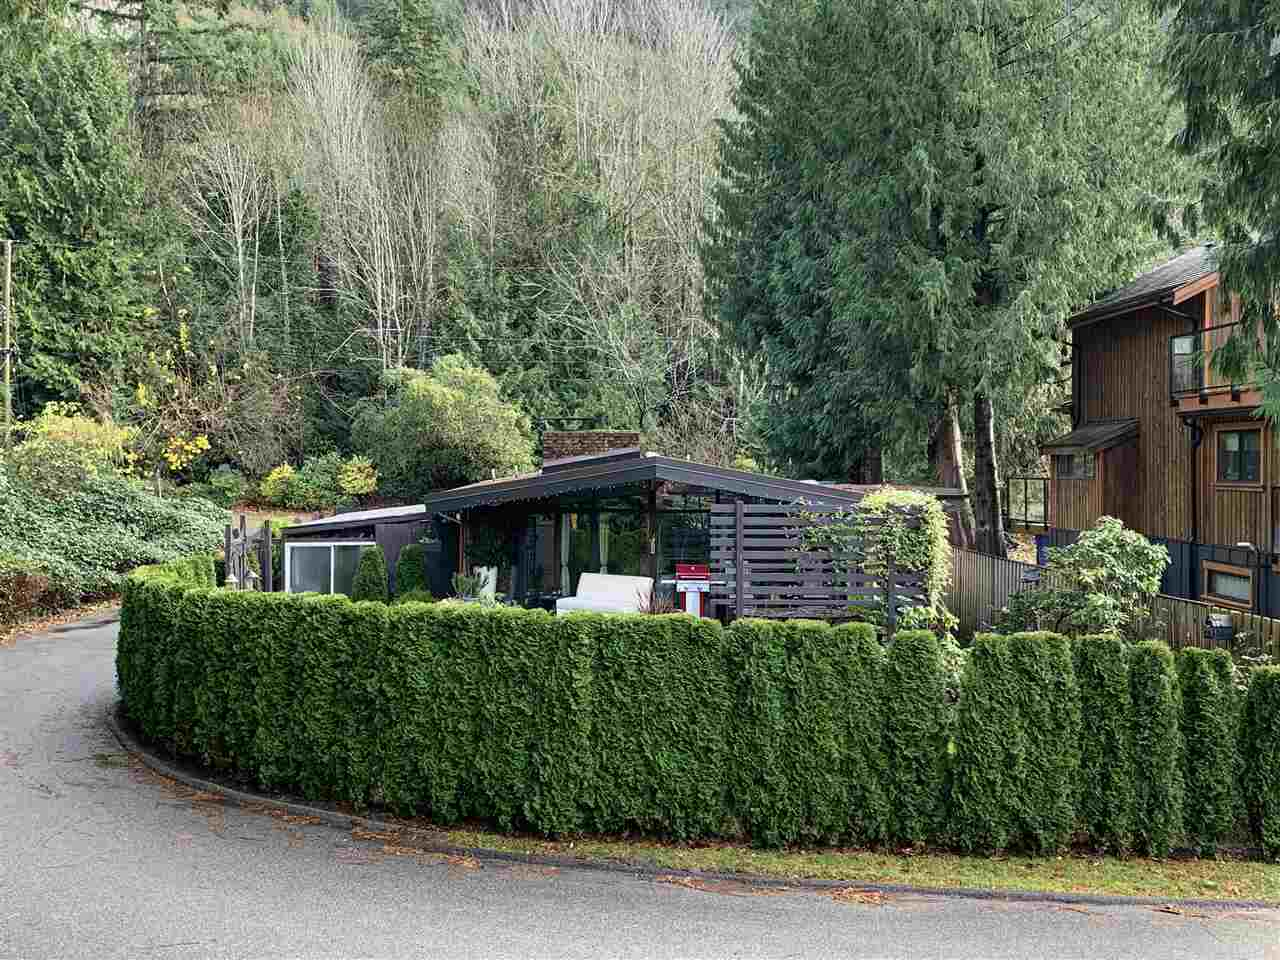 27 BRUNSWICK BEACH ROAD - Lions Bay House/Single Family for sale, 2 Bedrooms (R2518865) - #3